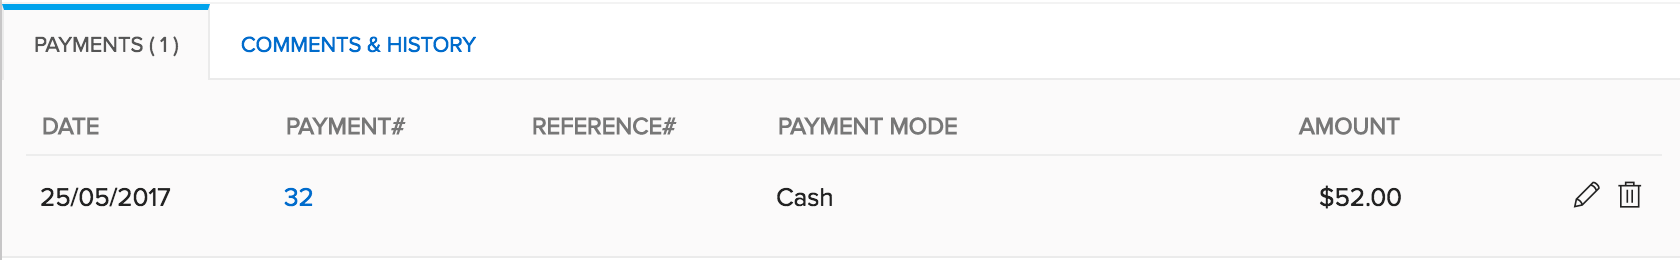 Image of the payments received tab